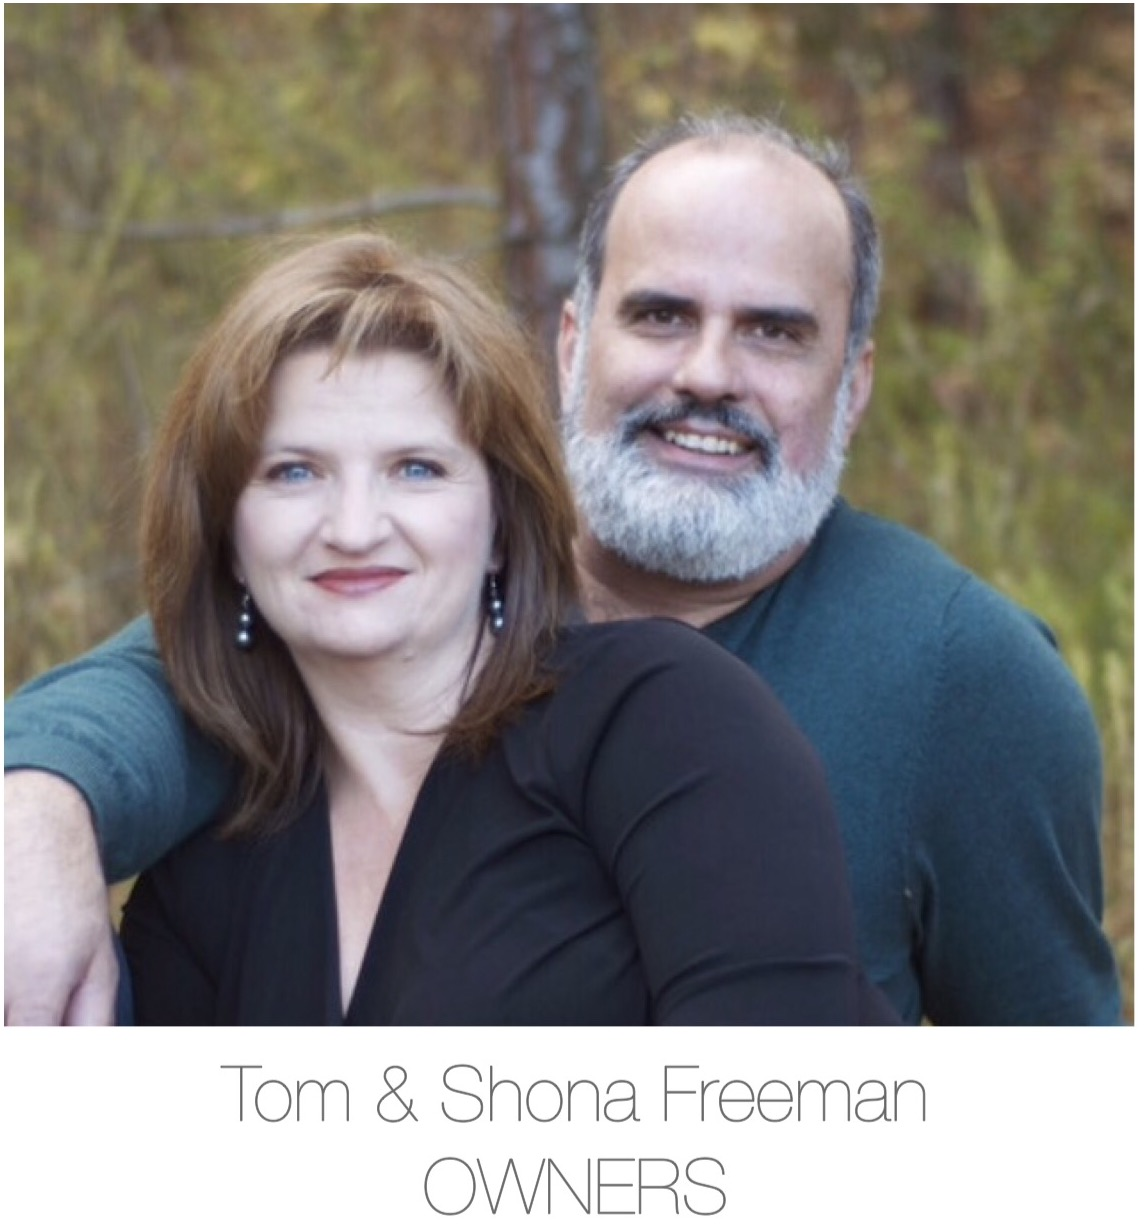 Tom & Shona Freeman, Owners | Phillips Telecommunications | About Us